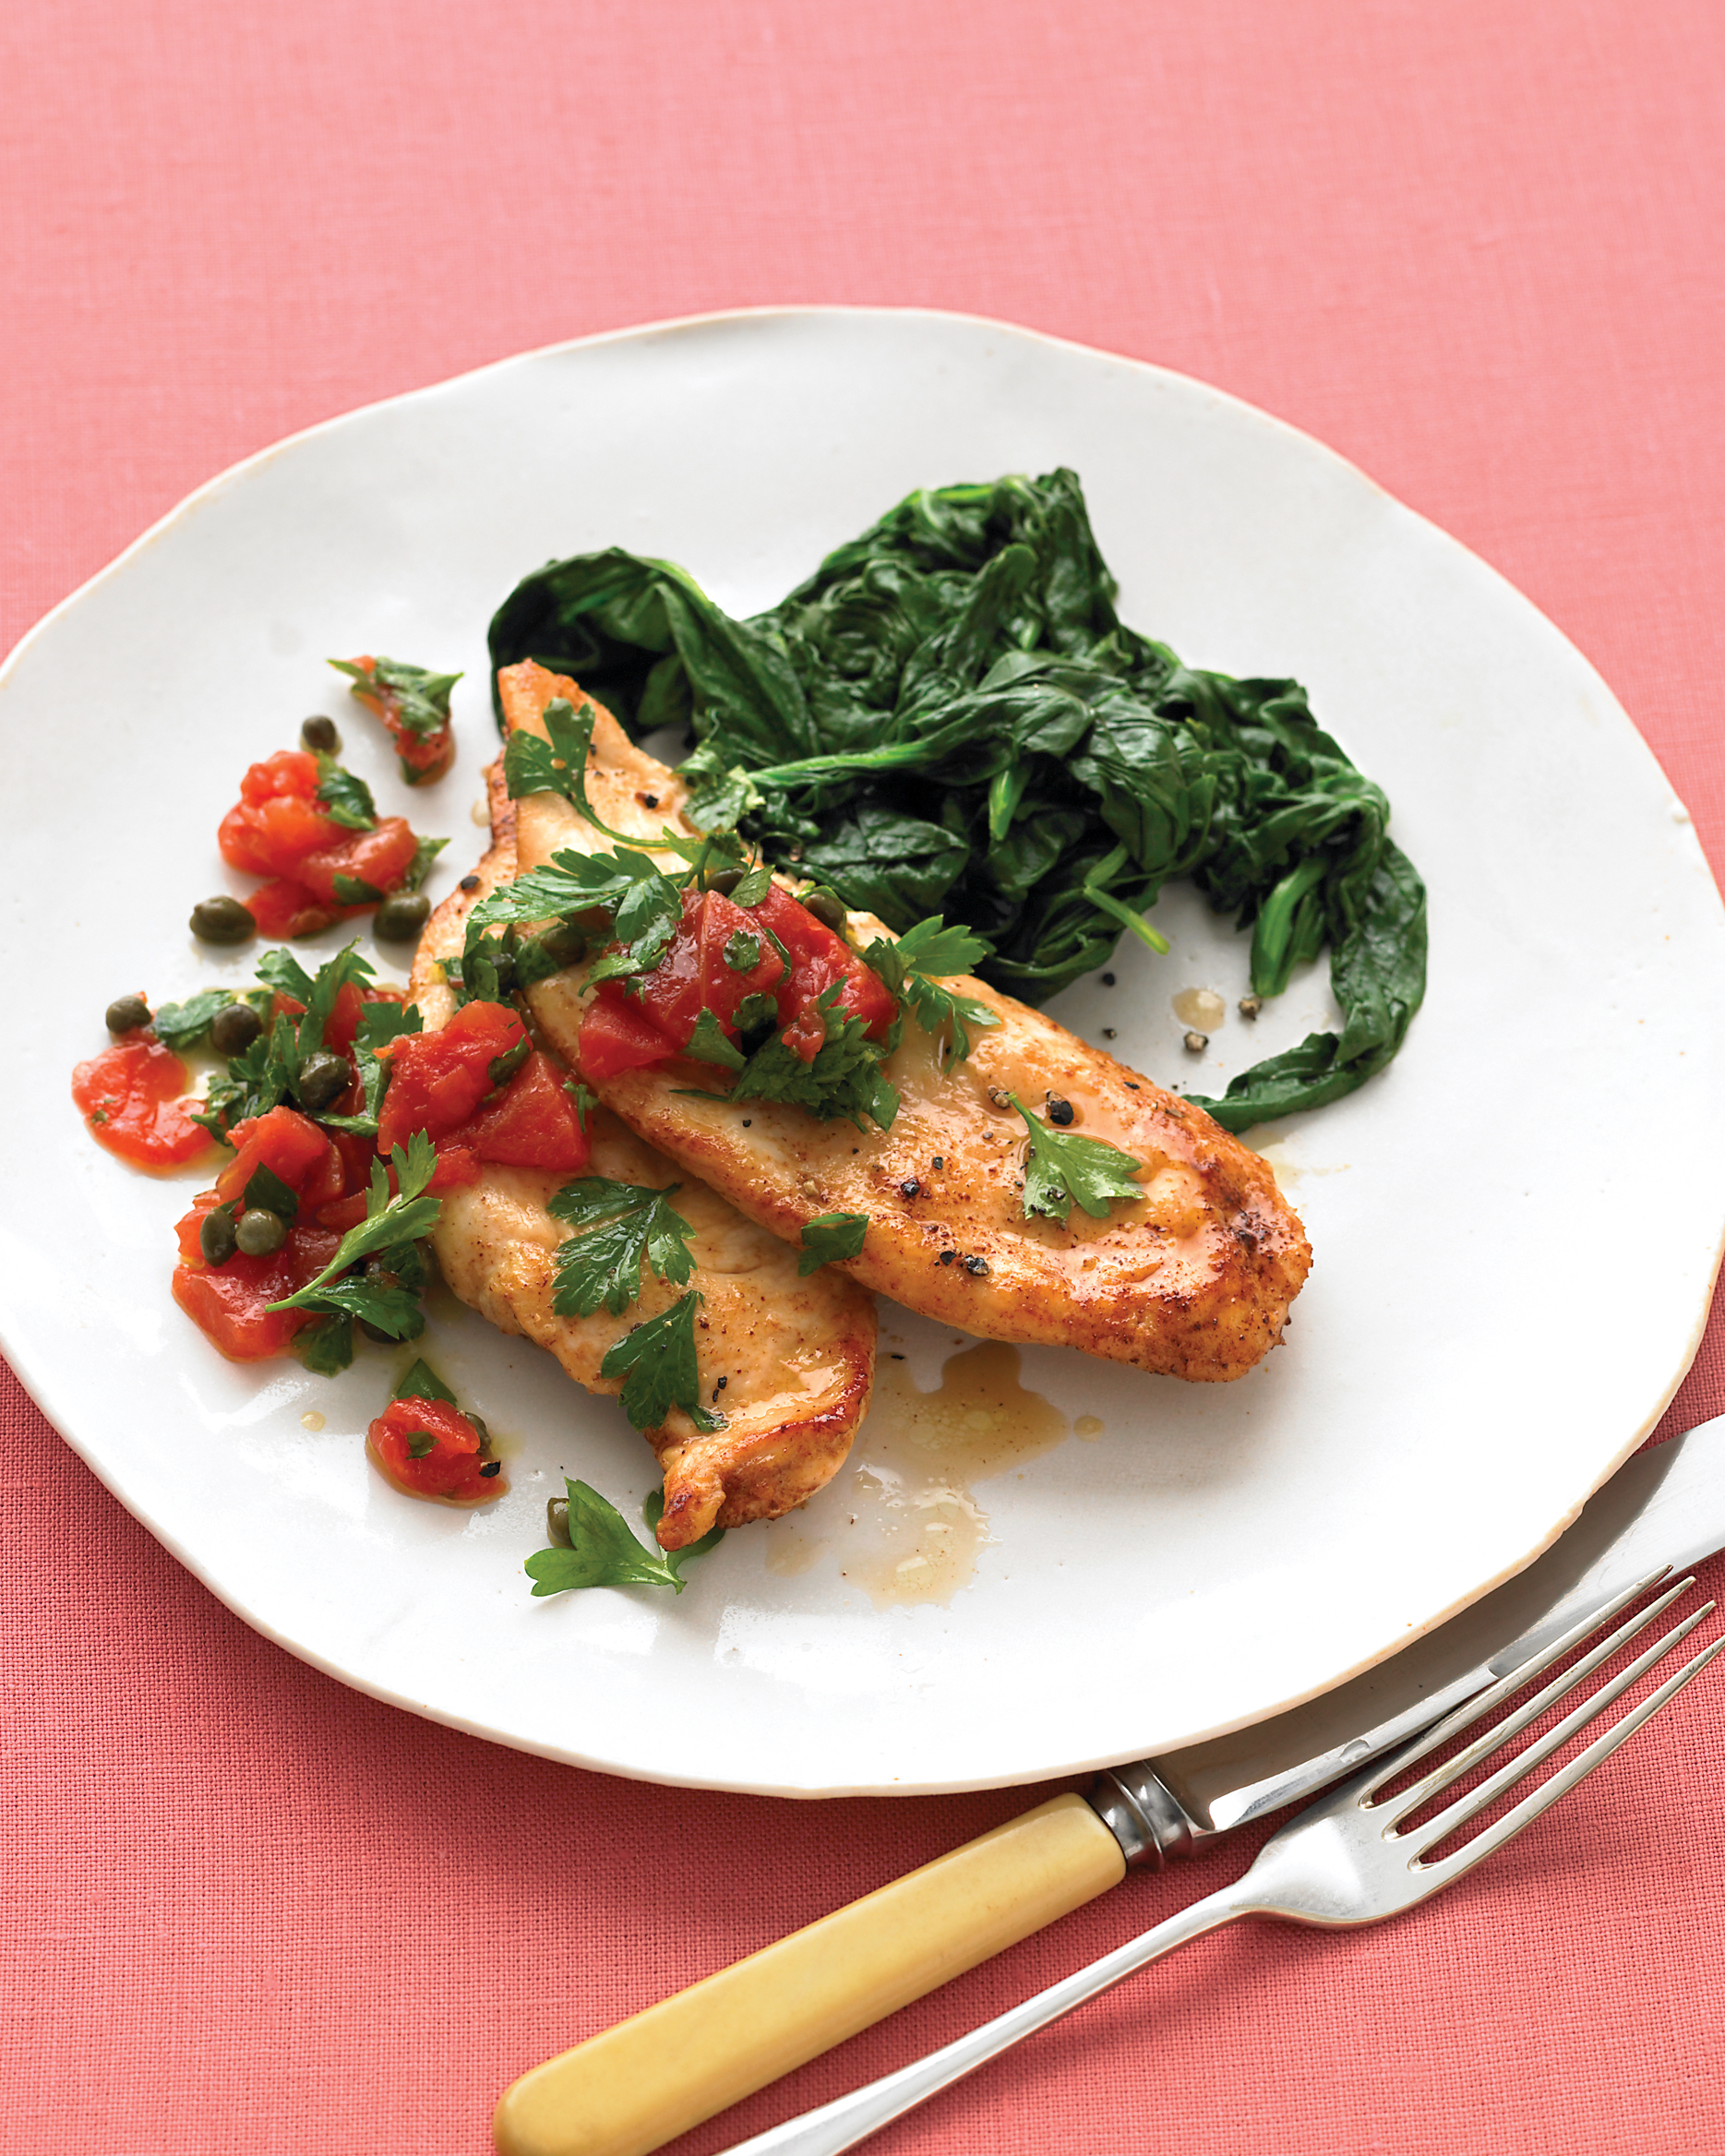 Sautéed Chicken with Tomato Relish and Spinach